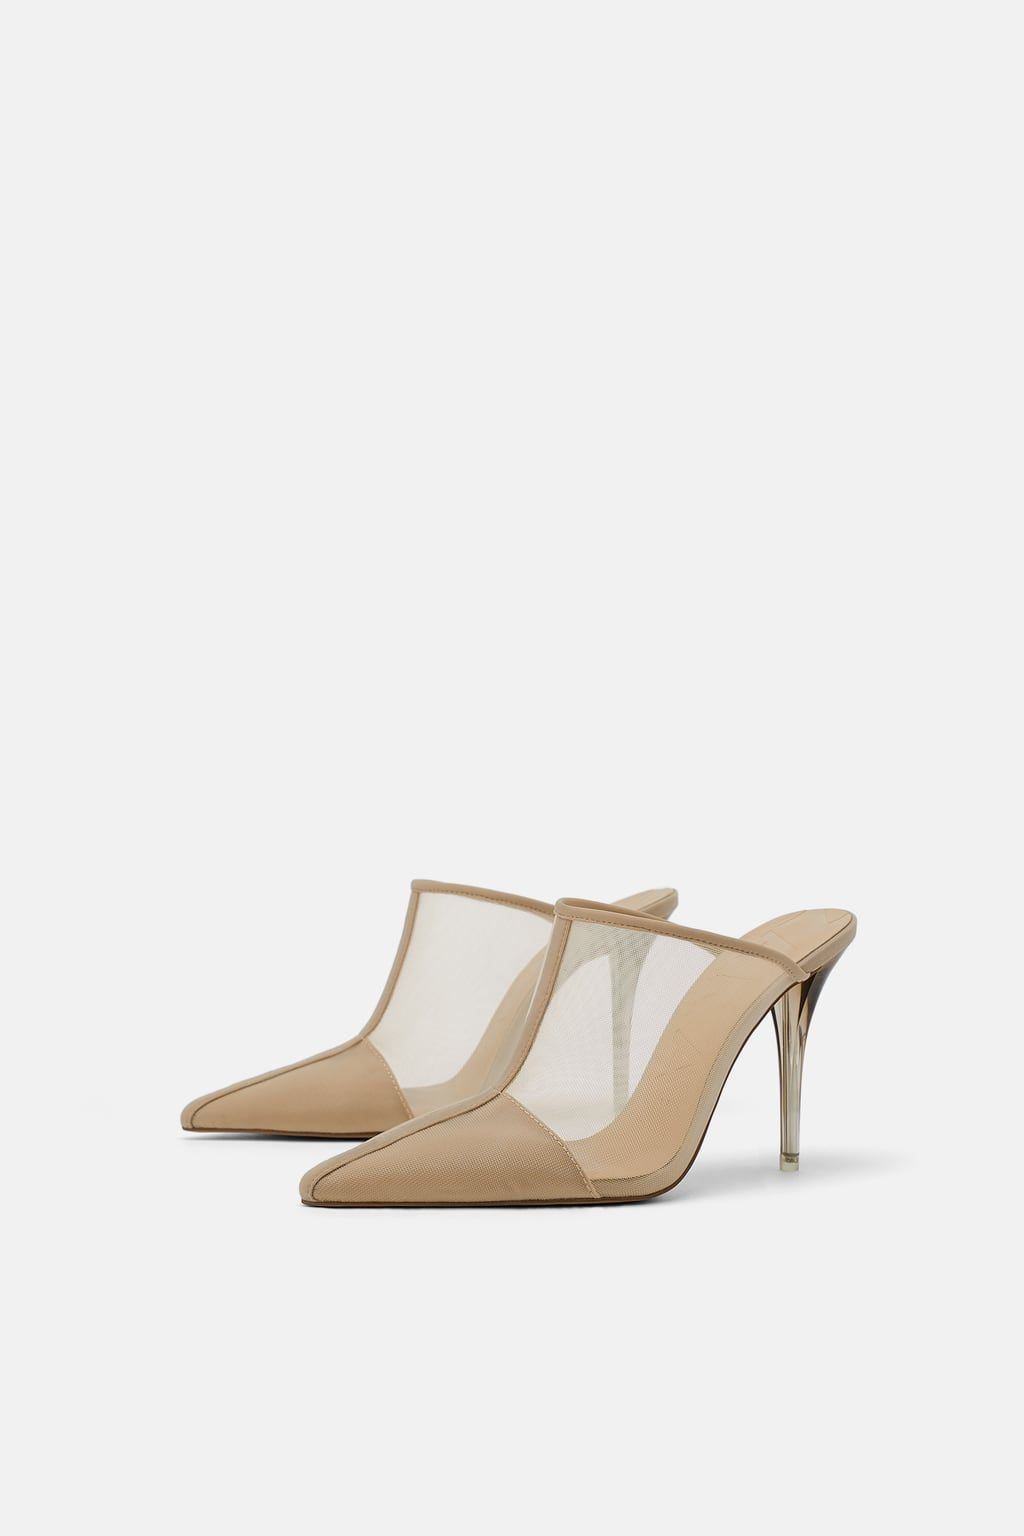 Slingback Kitten Heel Shoes Shoes Woman Shoes Bags Zara United States Heels Mule Shoes Outfit Toms Shoes Outfits